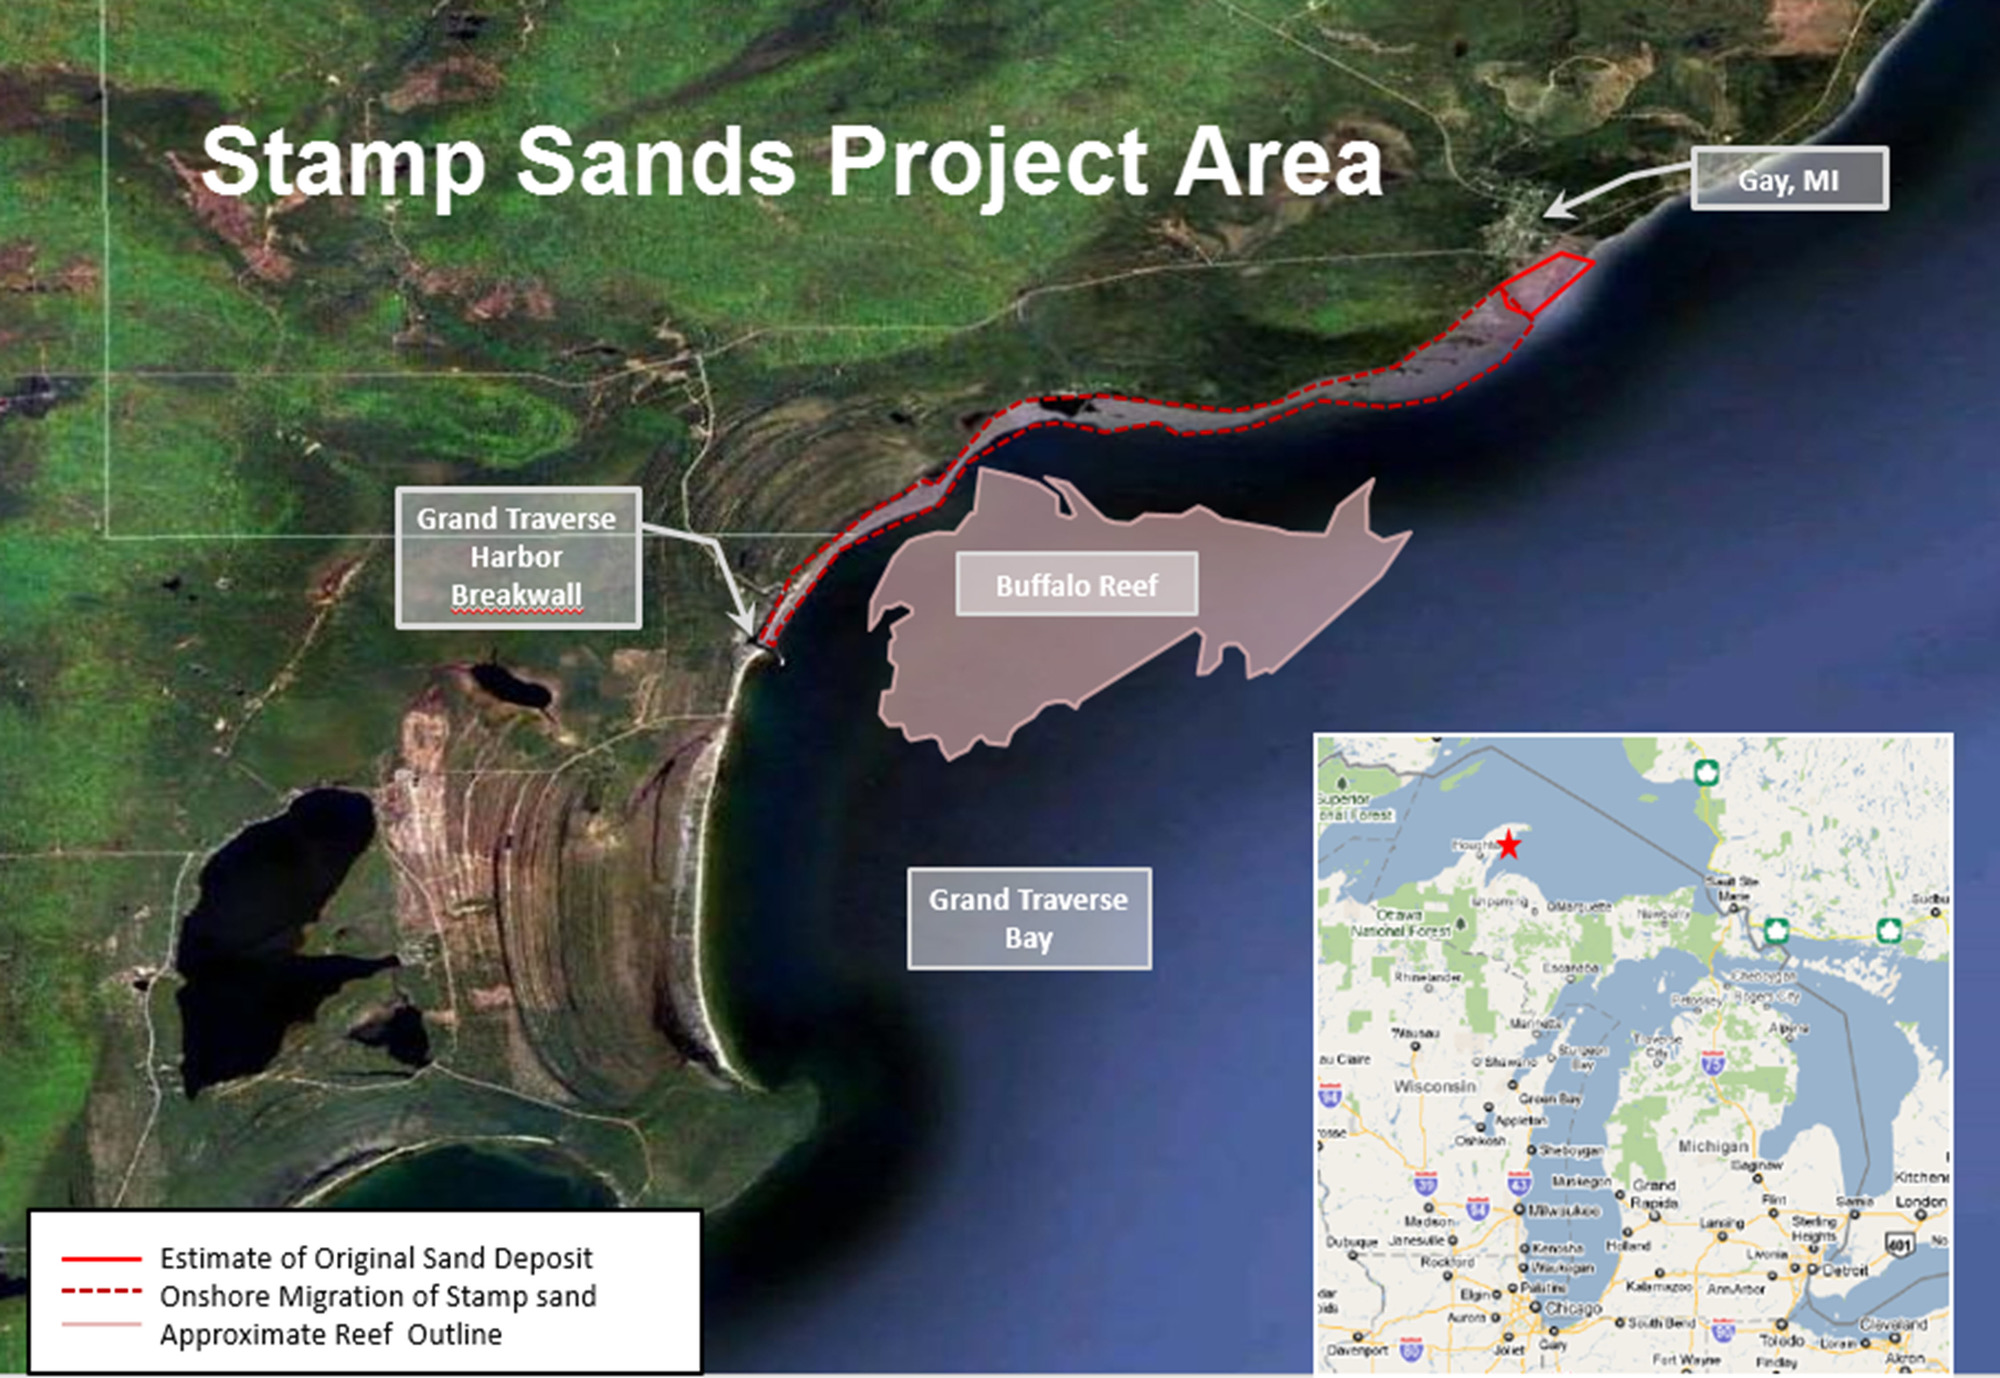 A map shows the stamp sands project area and Buffalo Reef.